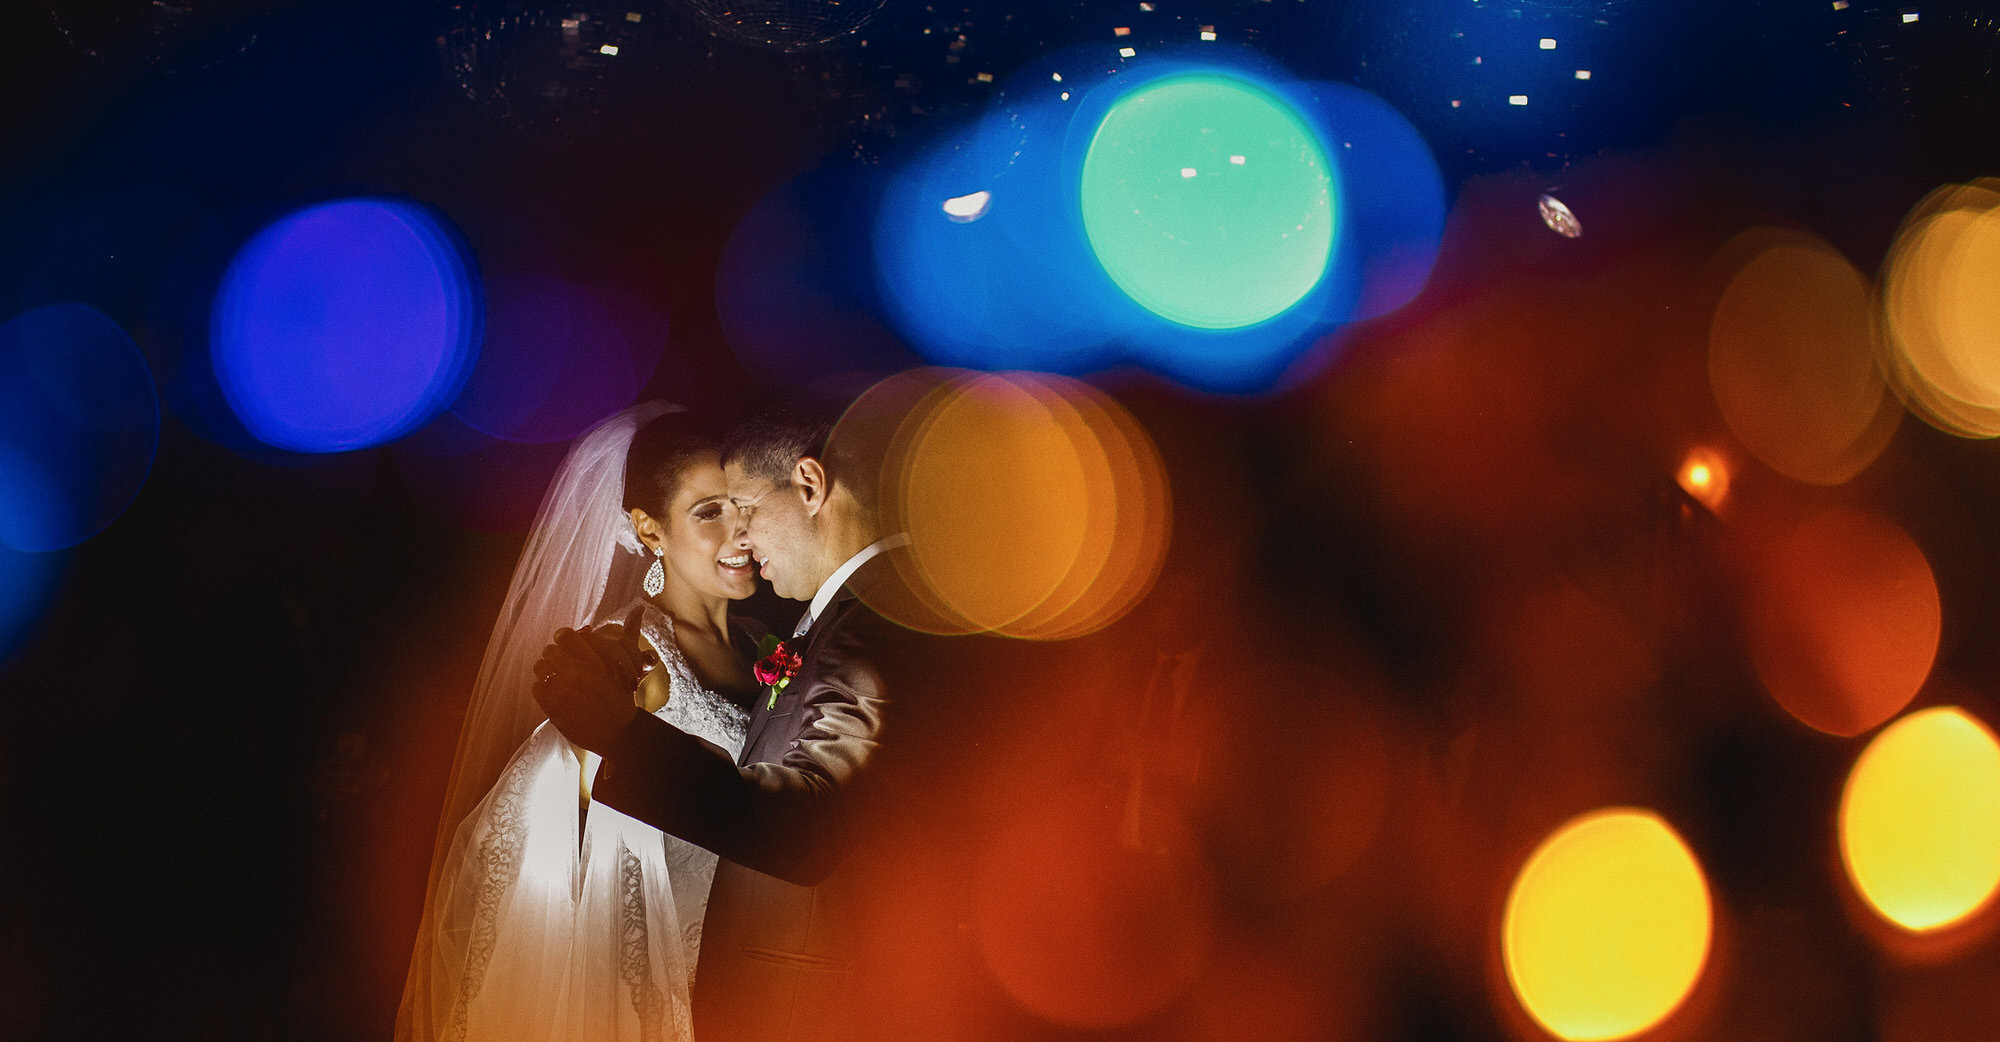 Bride and groom have their first dance surrounded by colorful lights